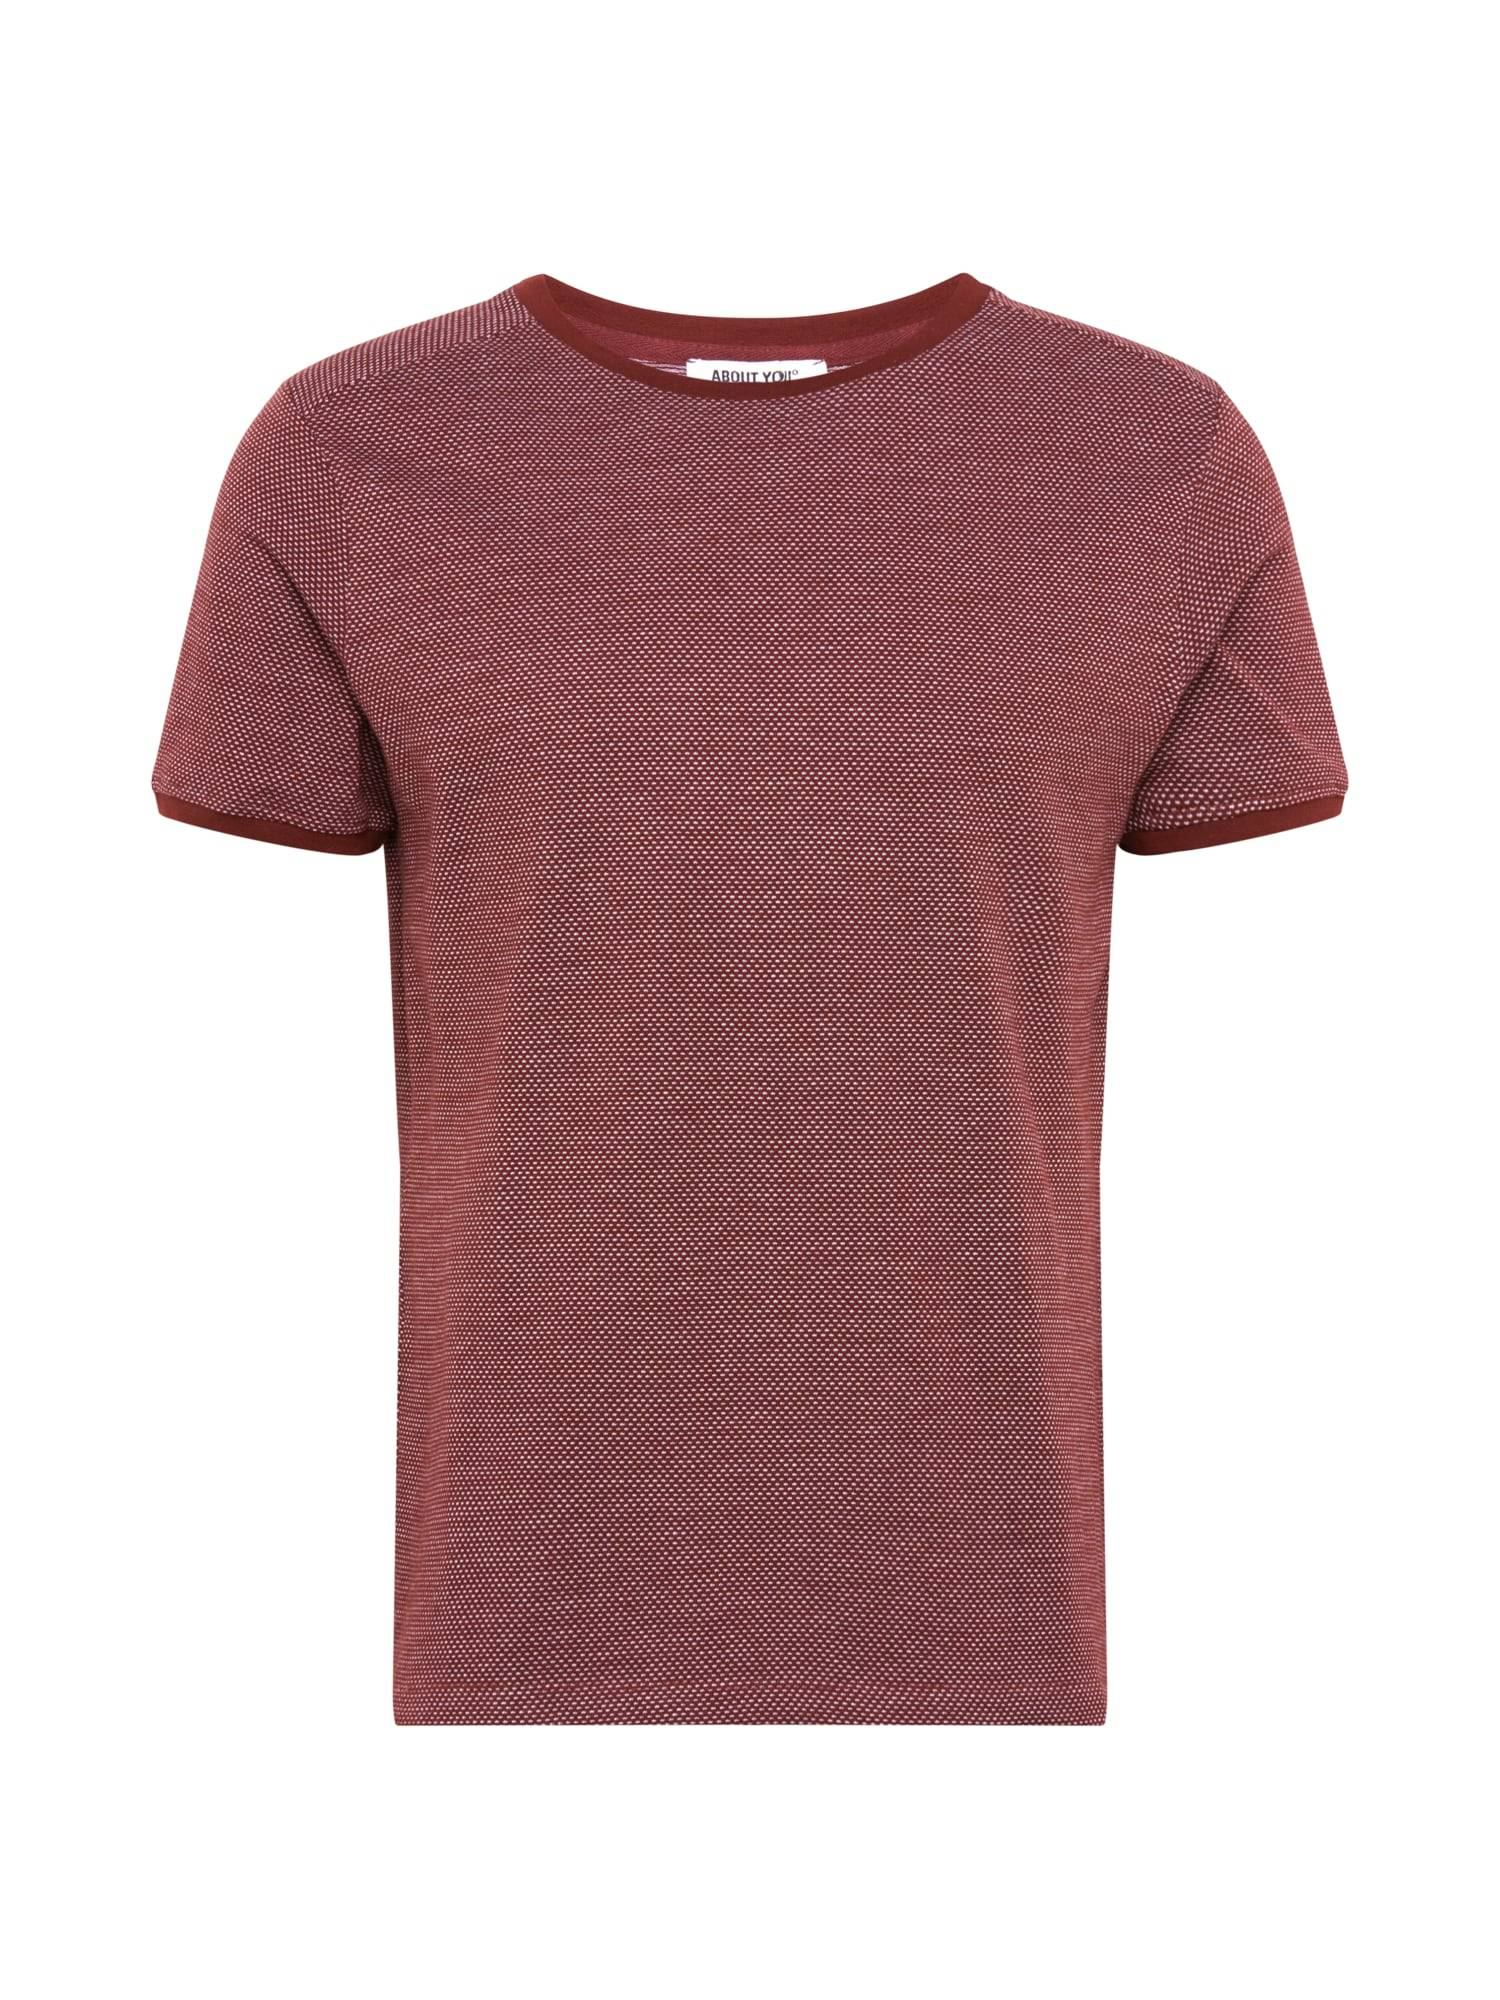 ABOUT YOU T-Shirt 'Marlo Shirt'  - Rouge - Taille: S - male